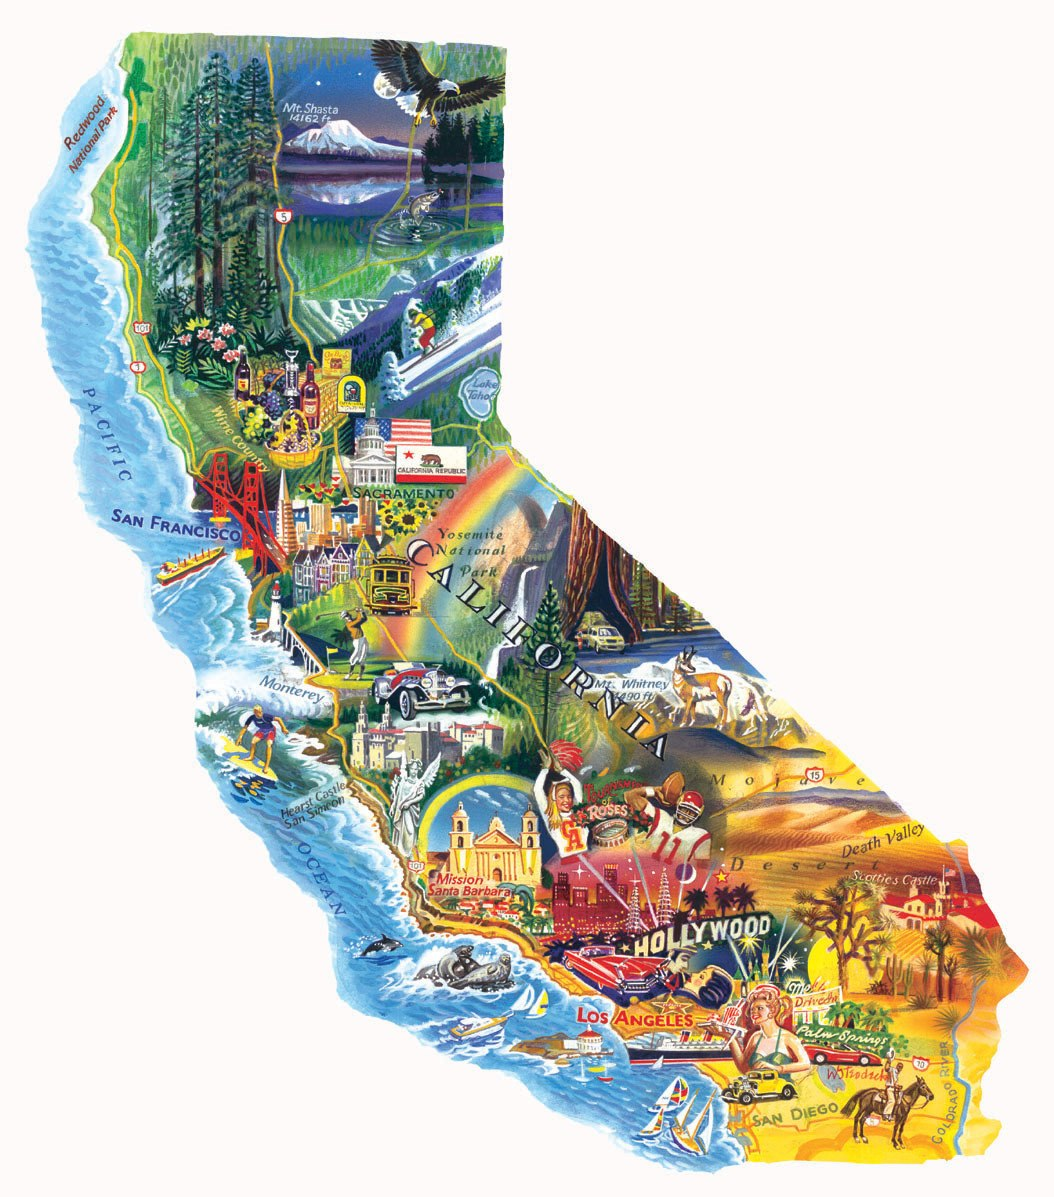 Sun and Fun- California - 1000pc Shaped Jigsaw Puzzle by Sunsout